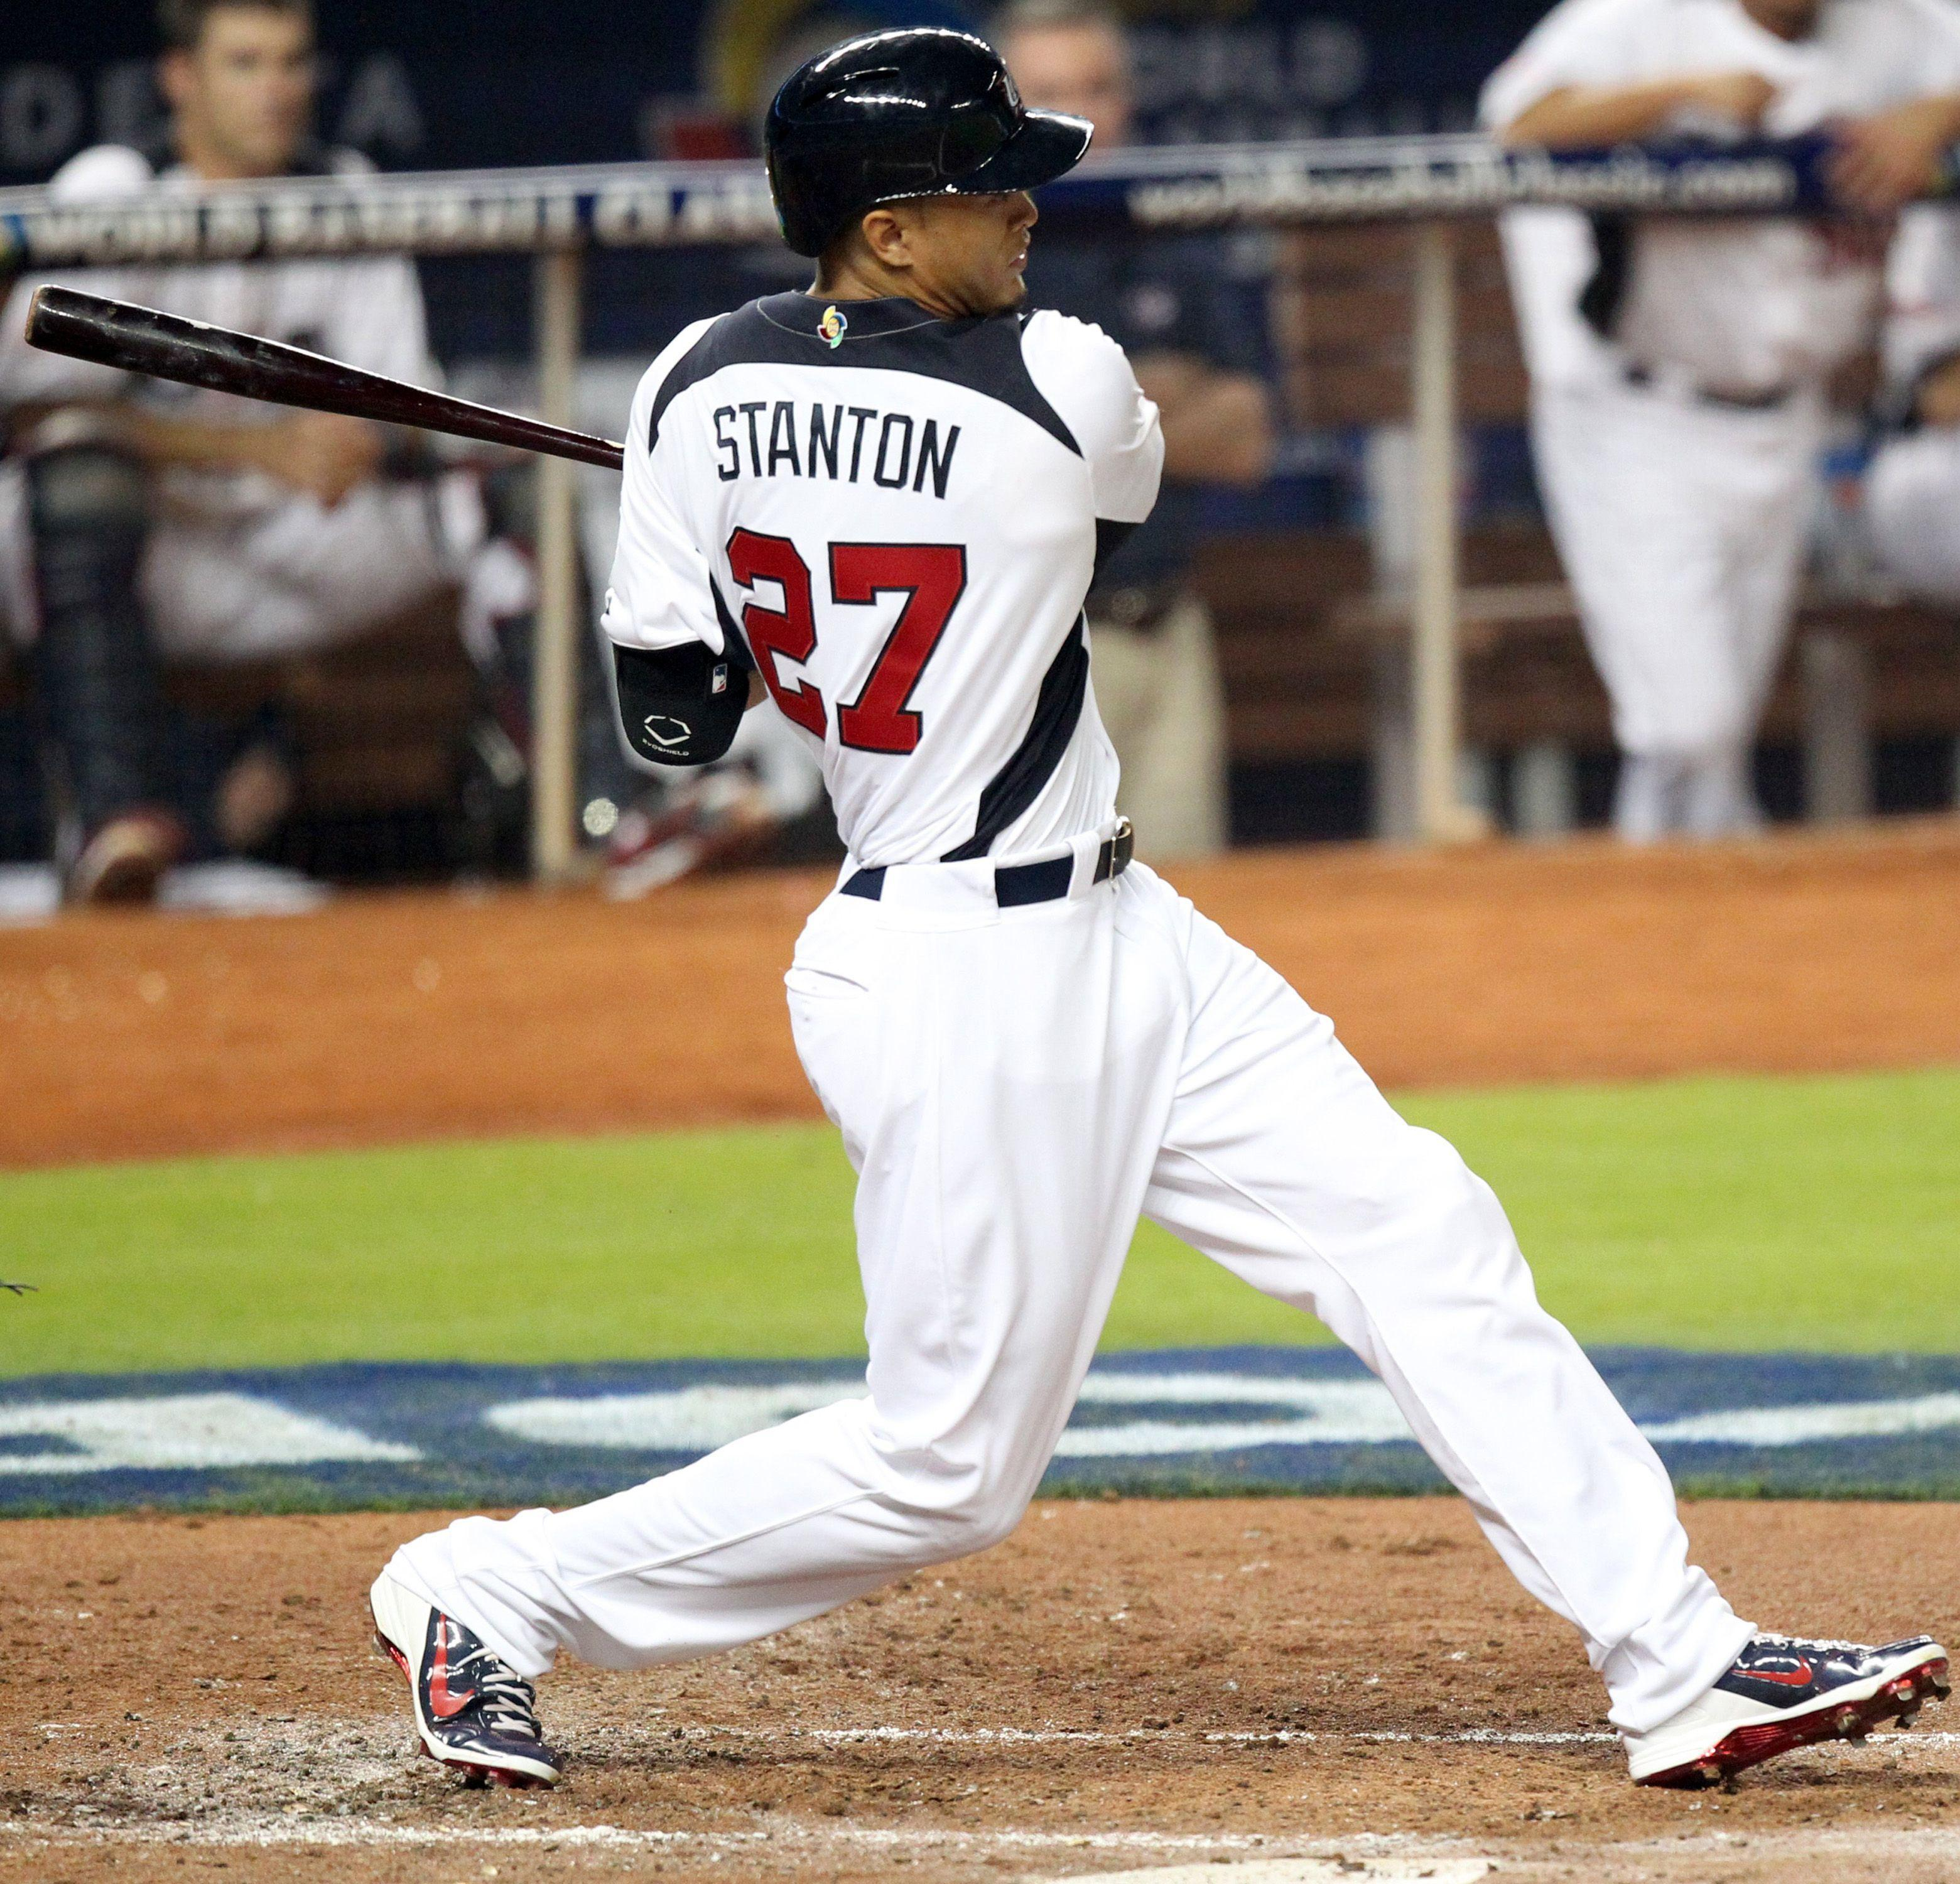 Giancarlo Stanton Batting Stance- #images